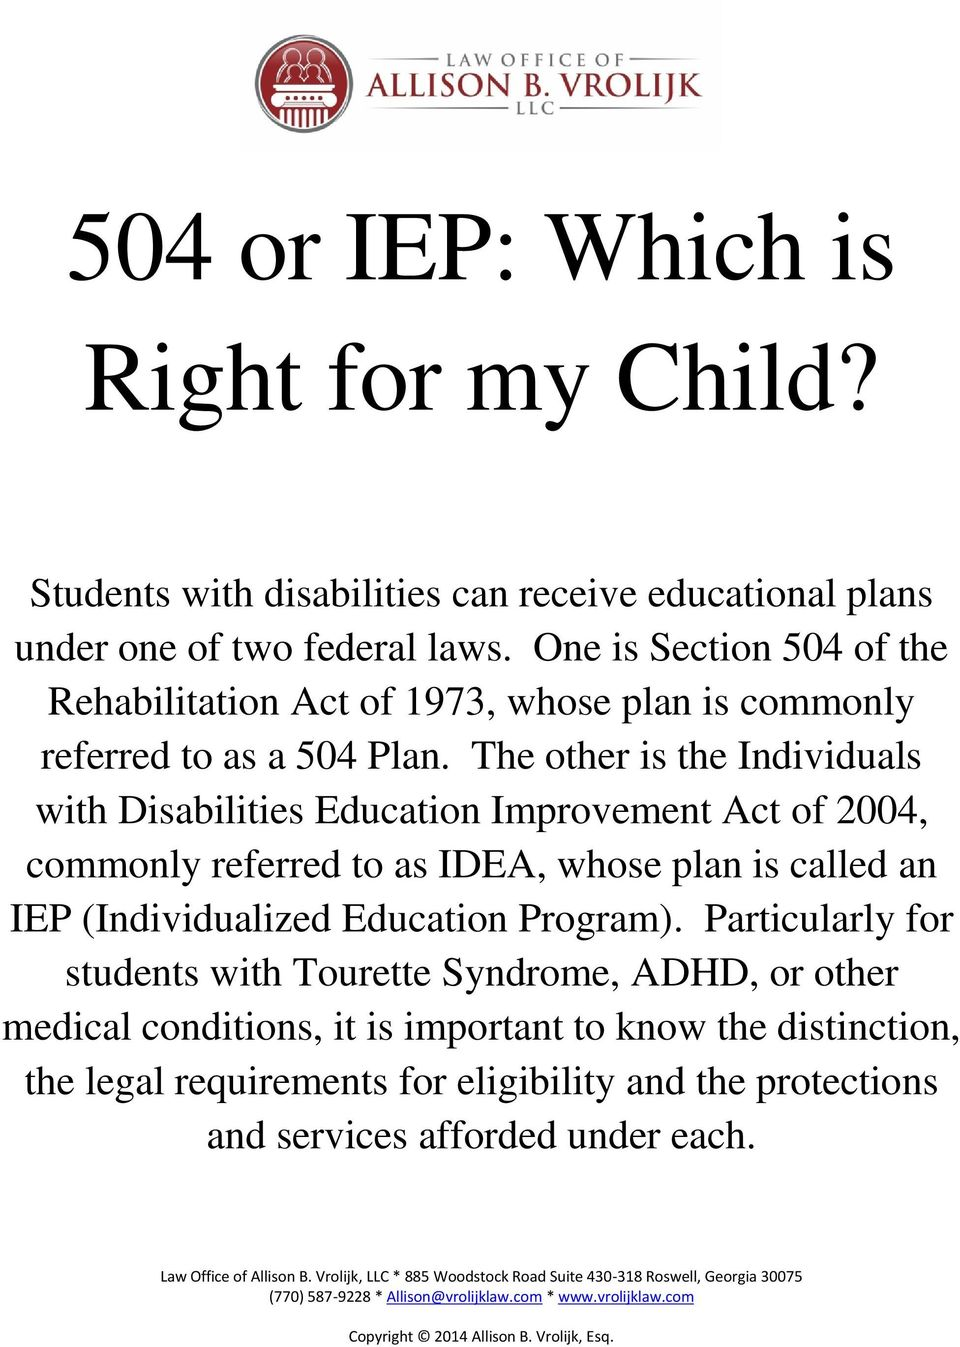 The other is the Individuals with Disabilities Education Improvement Act of 2004, commonly referred to as IDEA, whose plan is called an IEP (Individualized